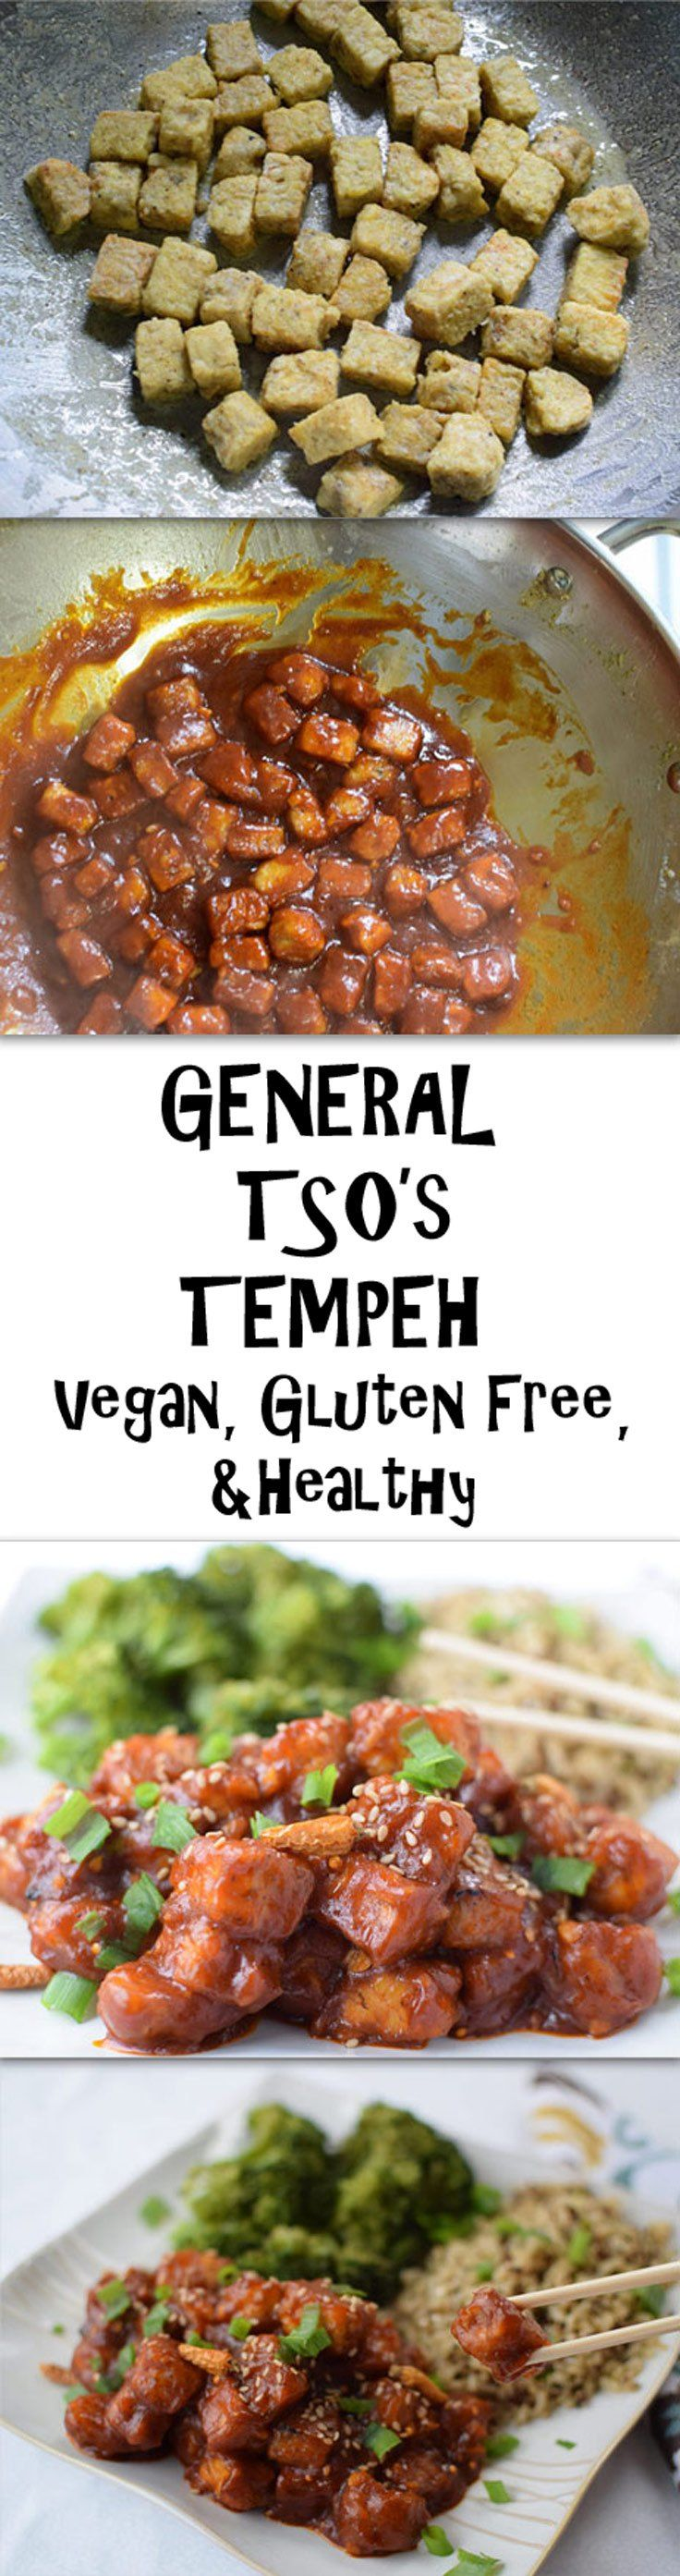 General Tso's Tempeh – A vegan amd healthy version of a classic dish